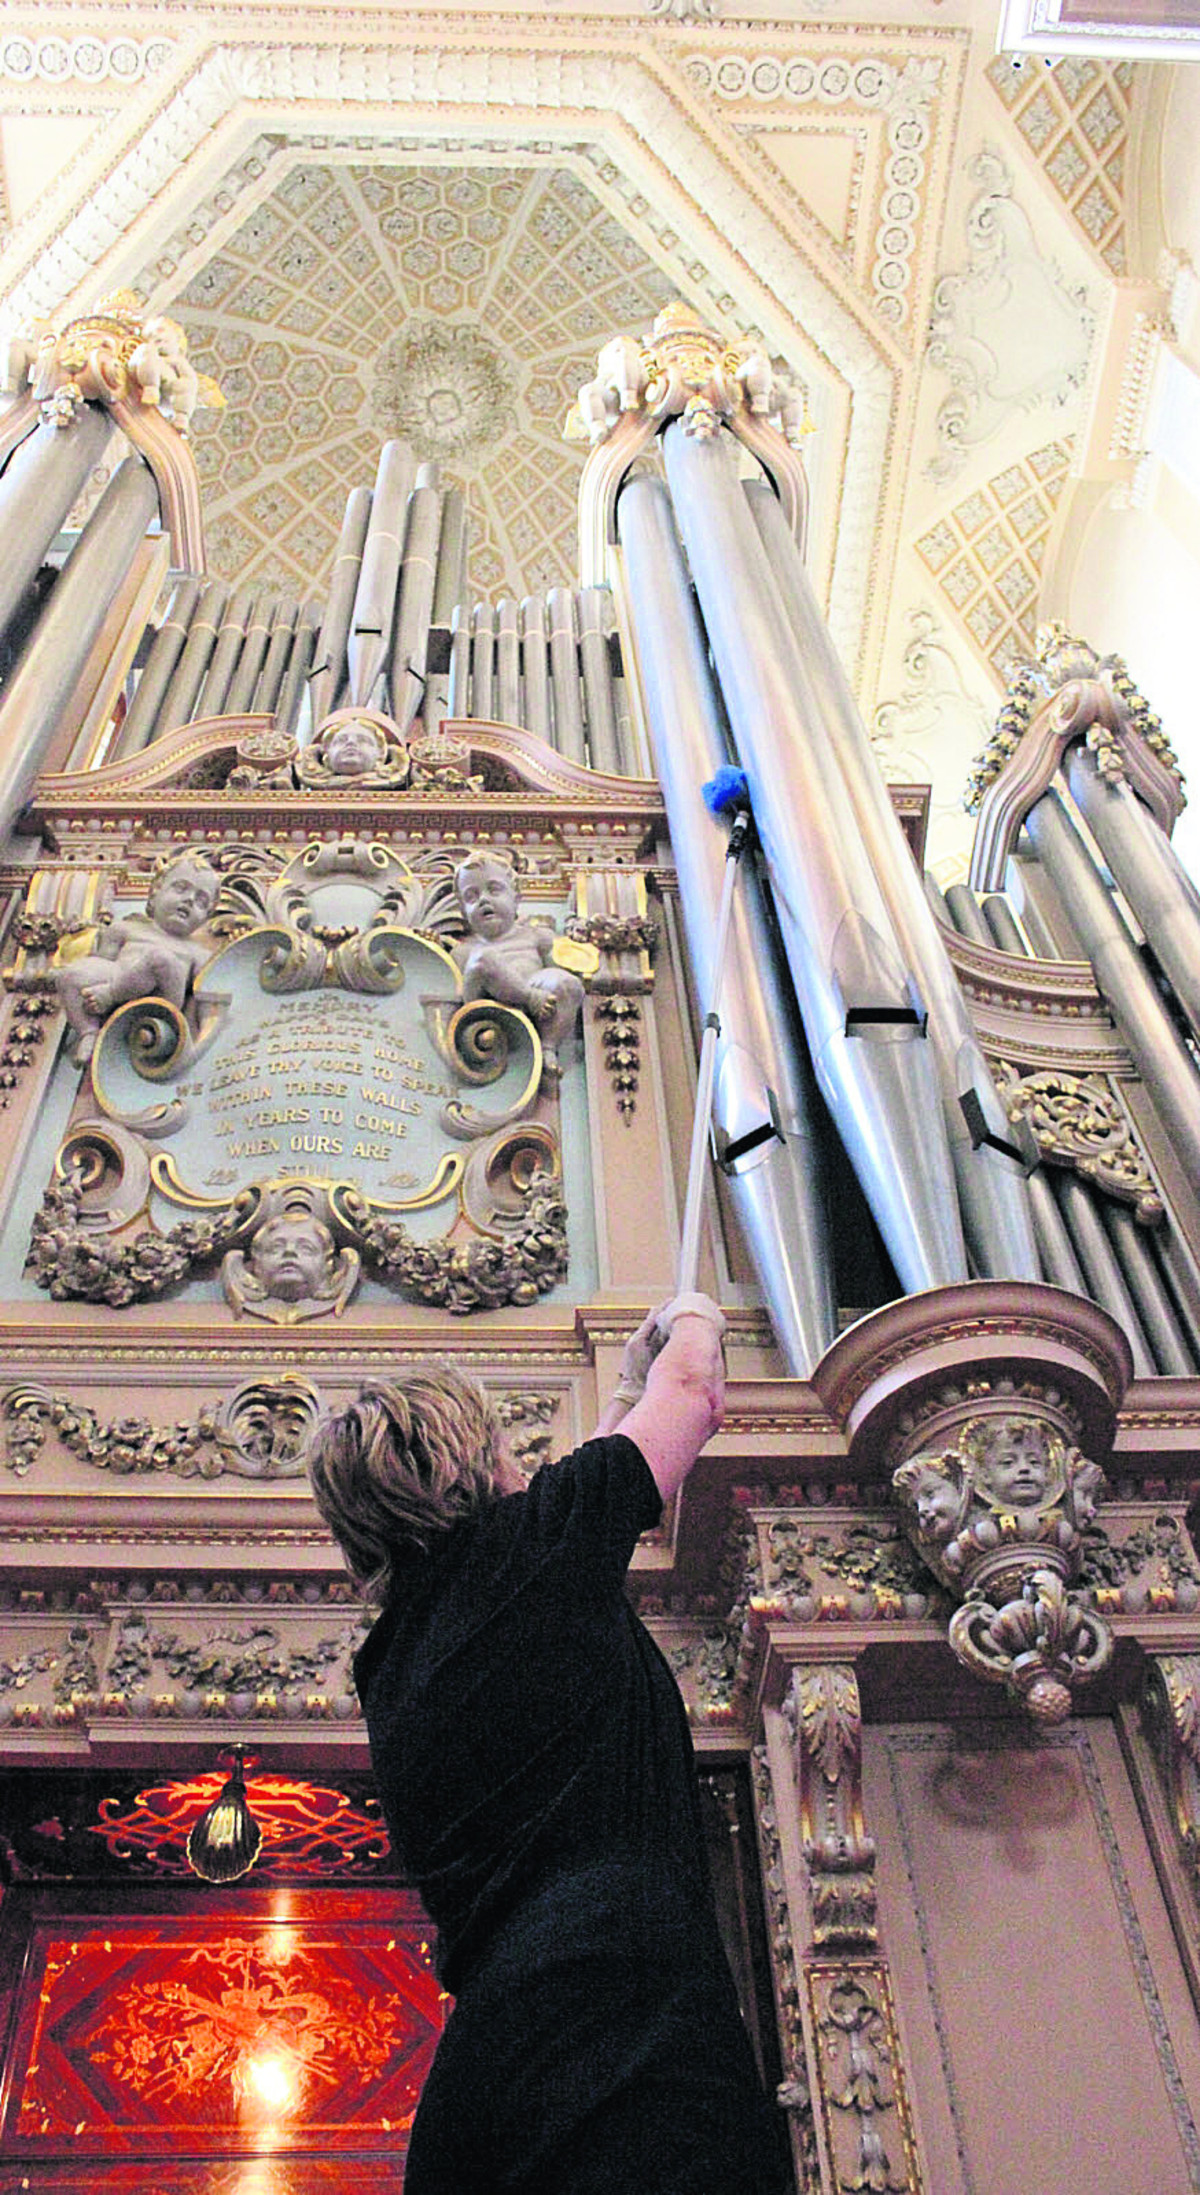 Blenheim Palace's conservation cleaner, Christina Dittmers, at work on the giant pipe organ